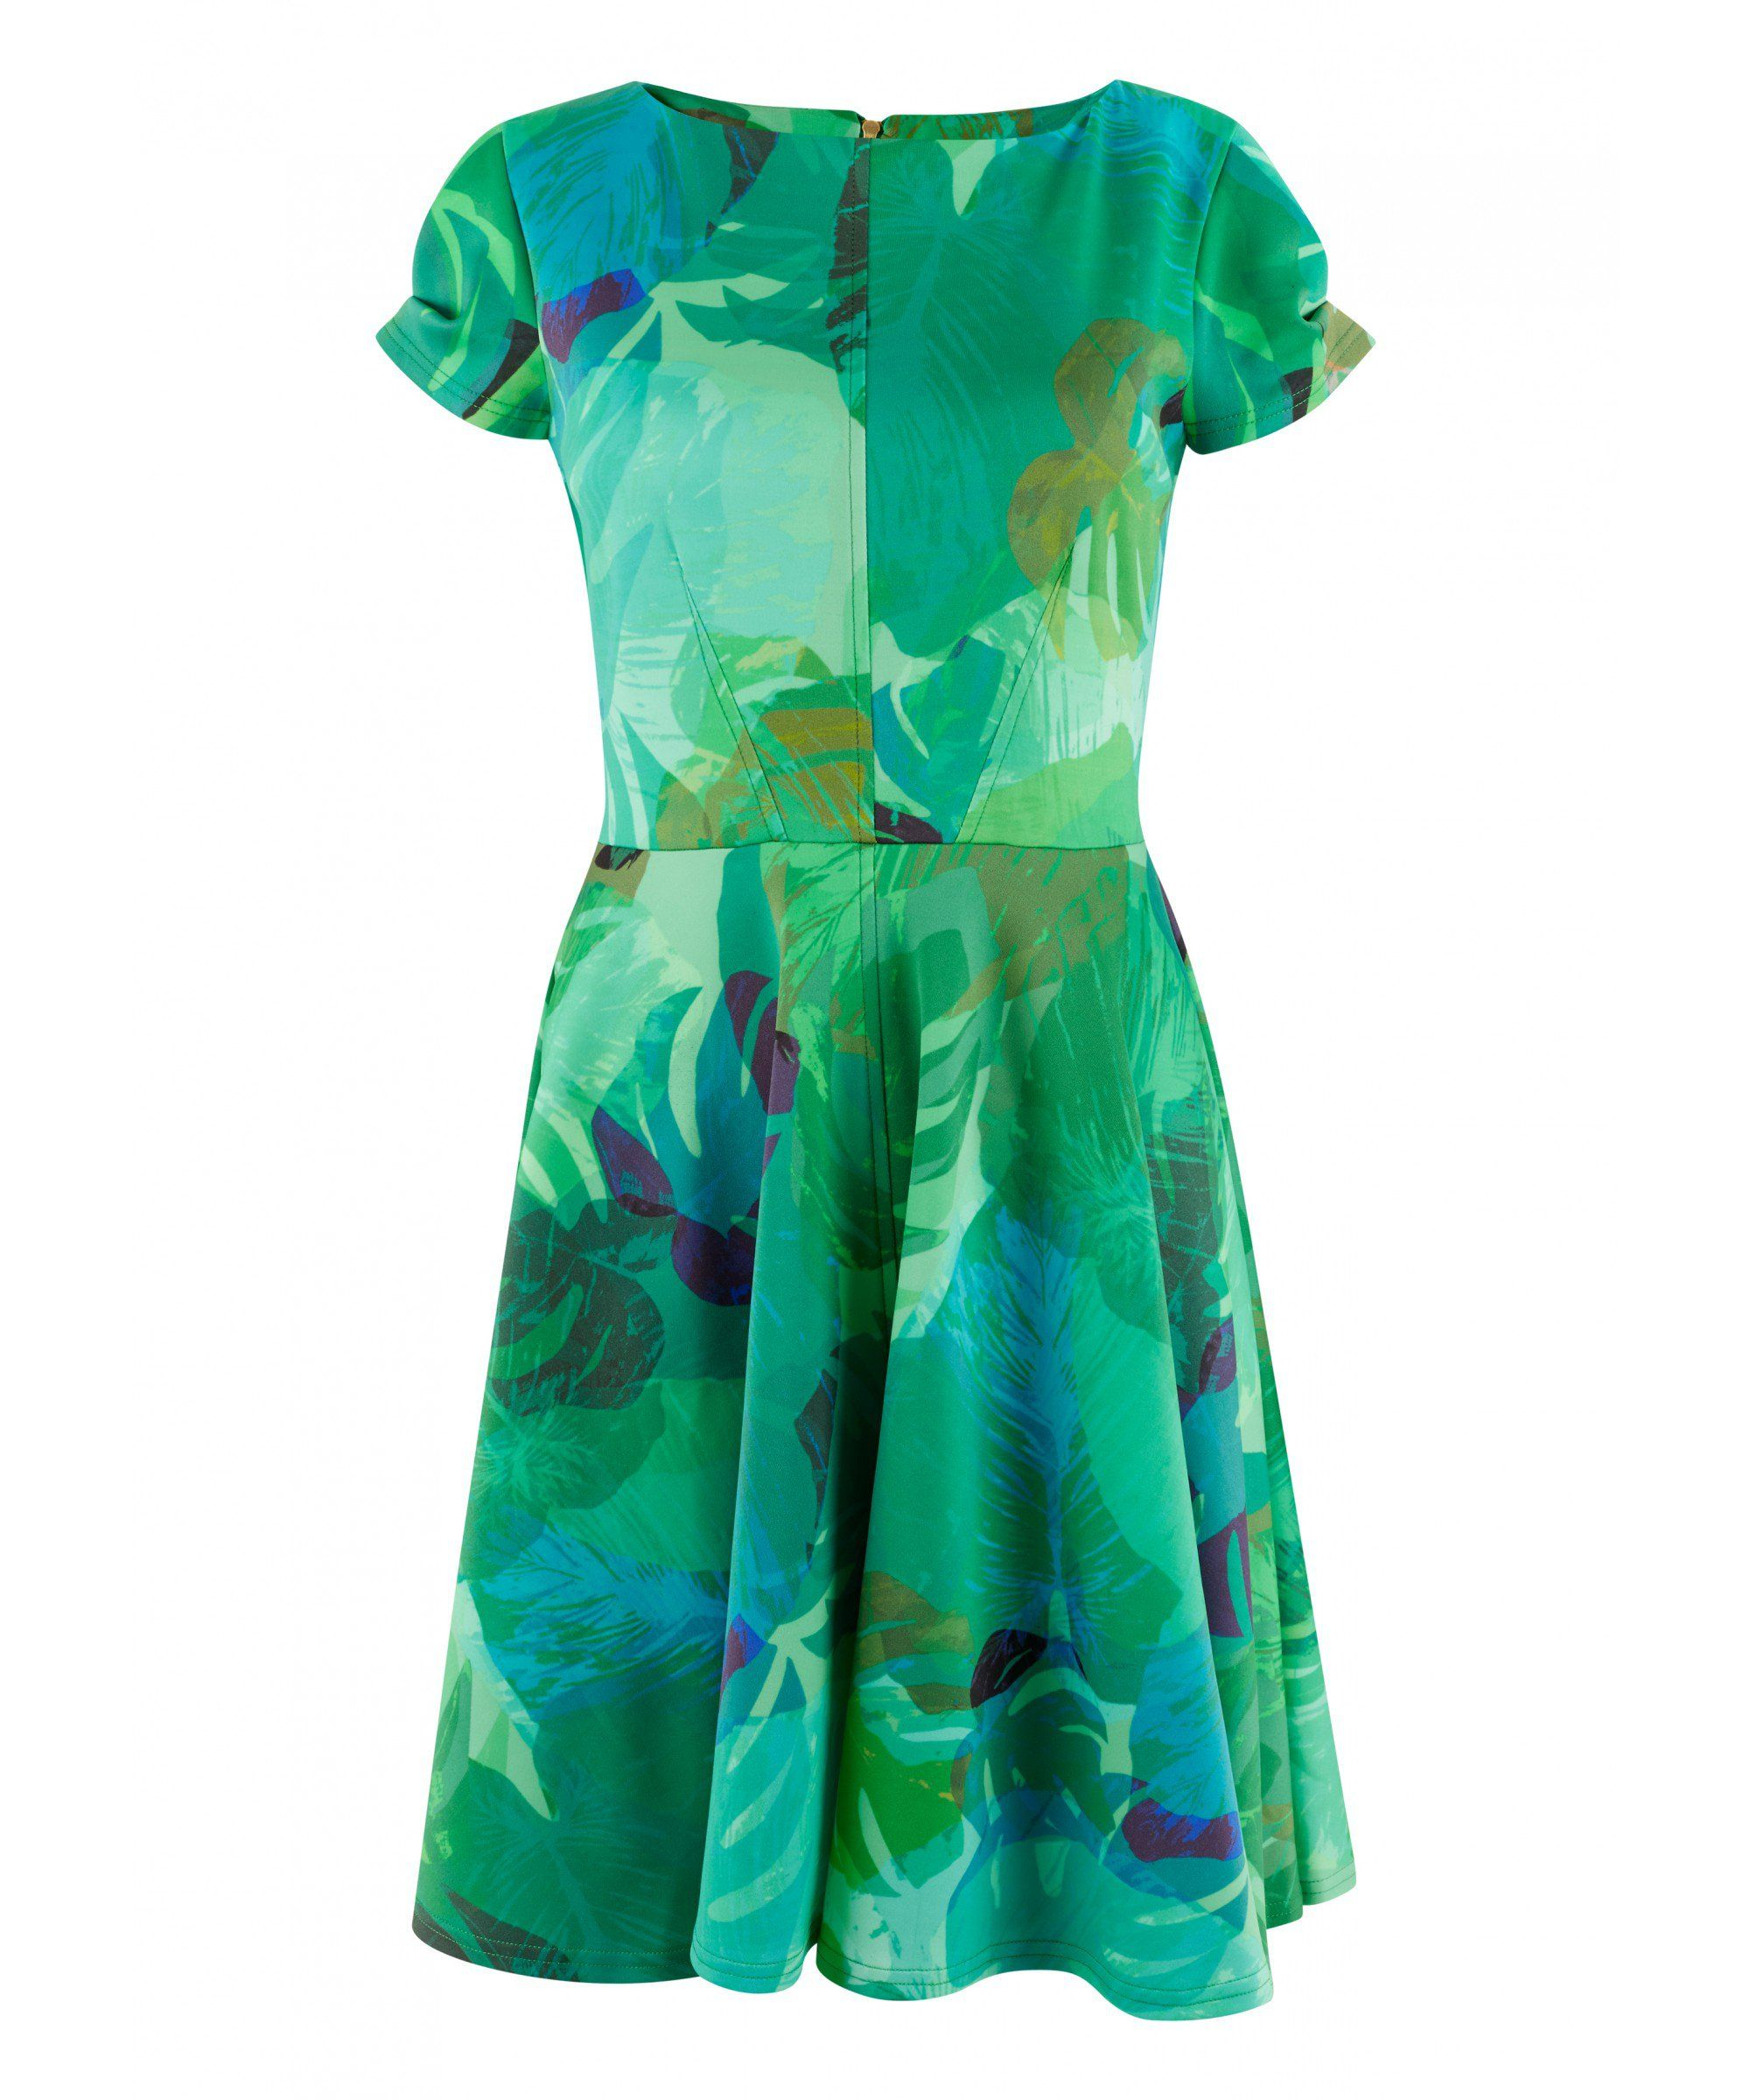 126d042d099 This skater dress has a beautiful emerald and jade green vibrant tropical  print. The pattern